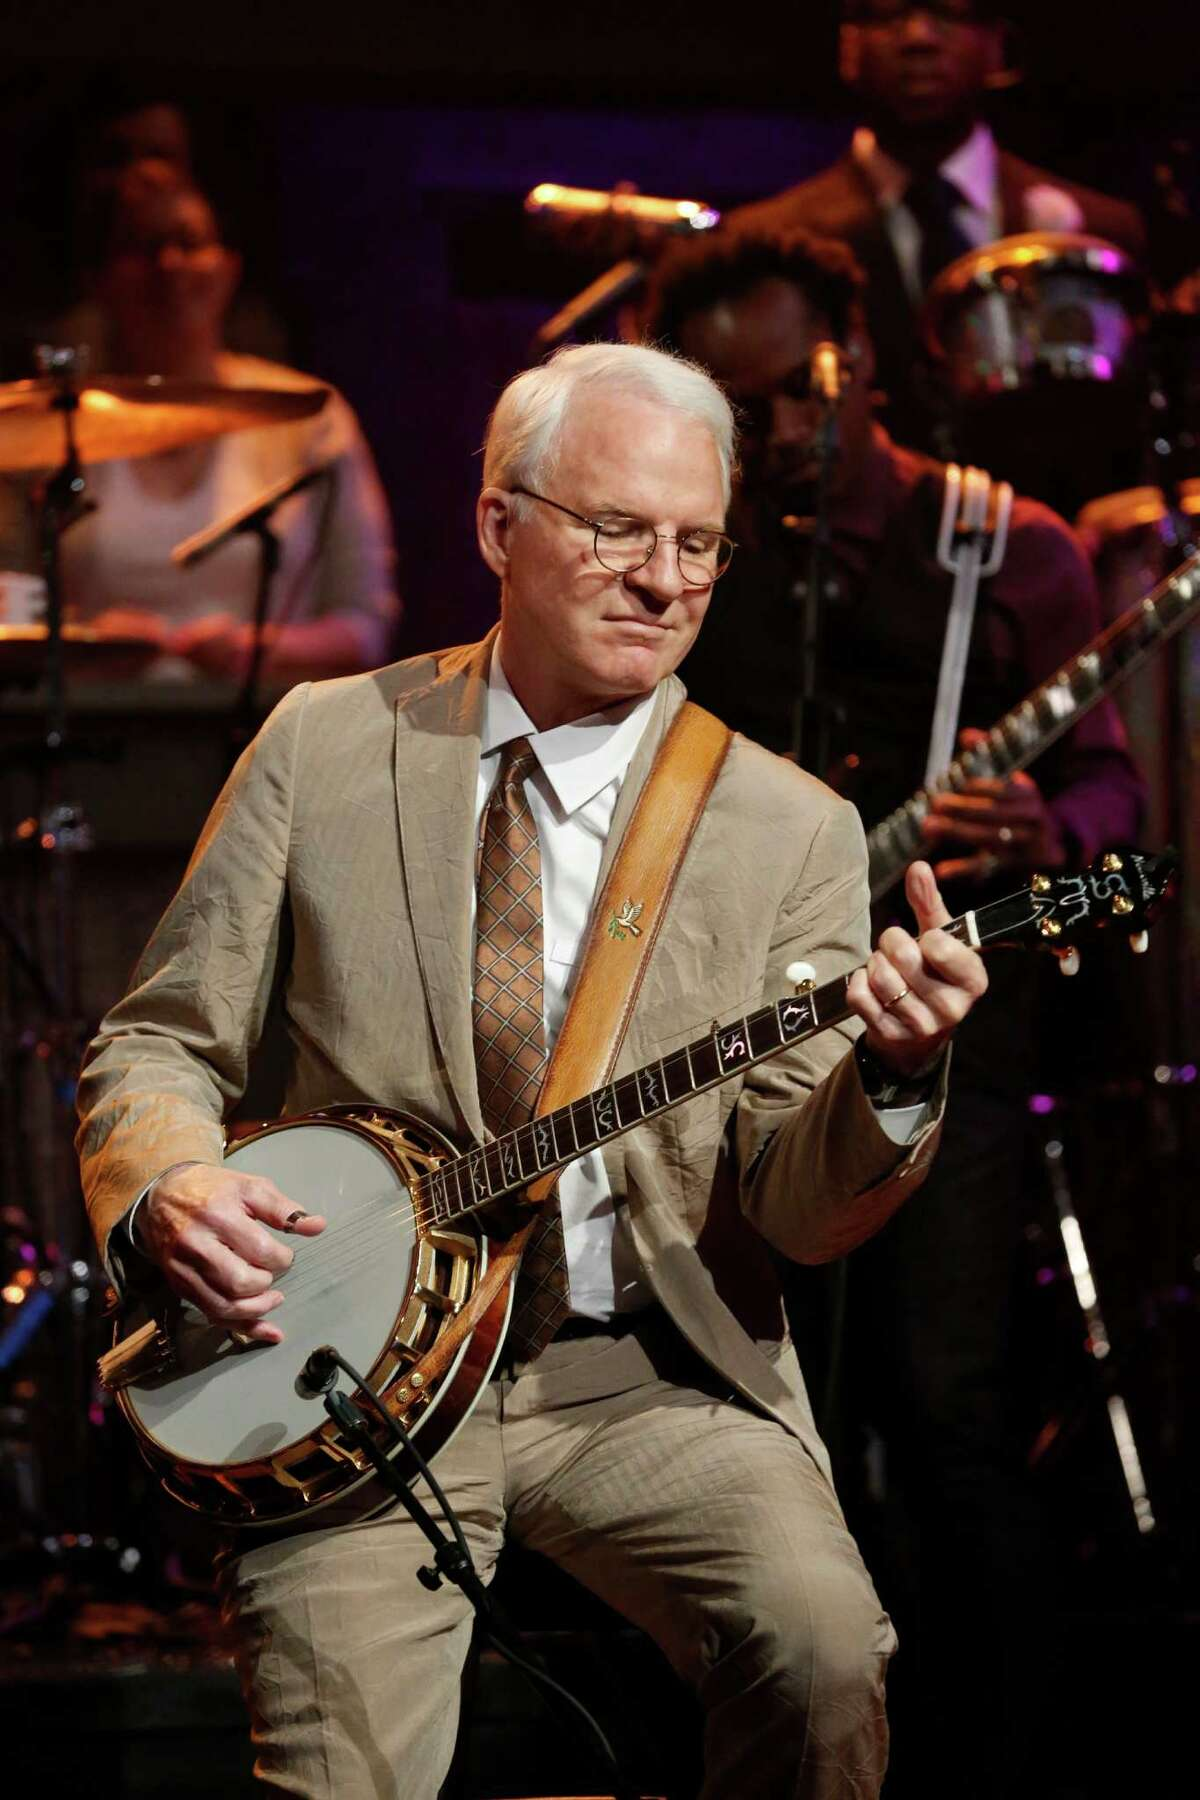 Steve Martin performs on